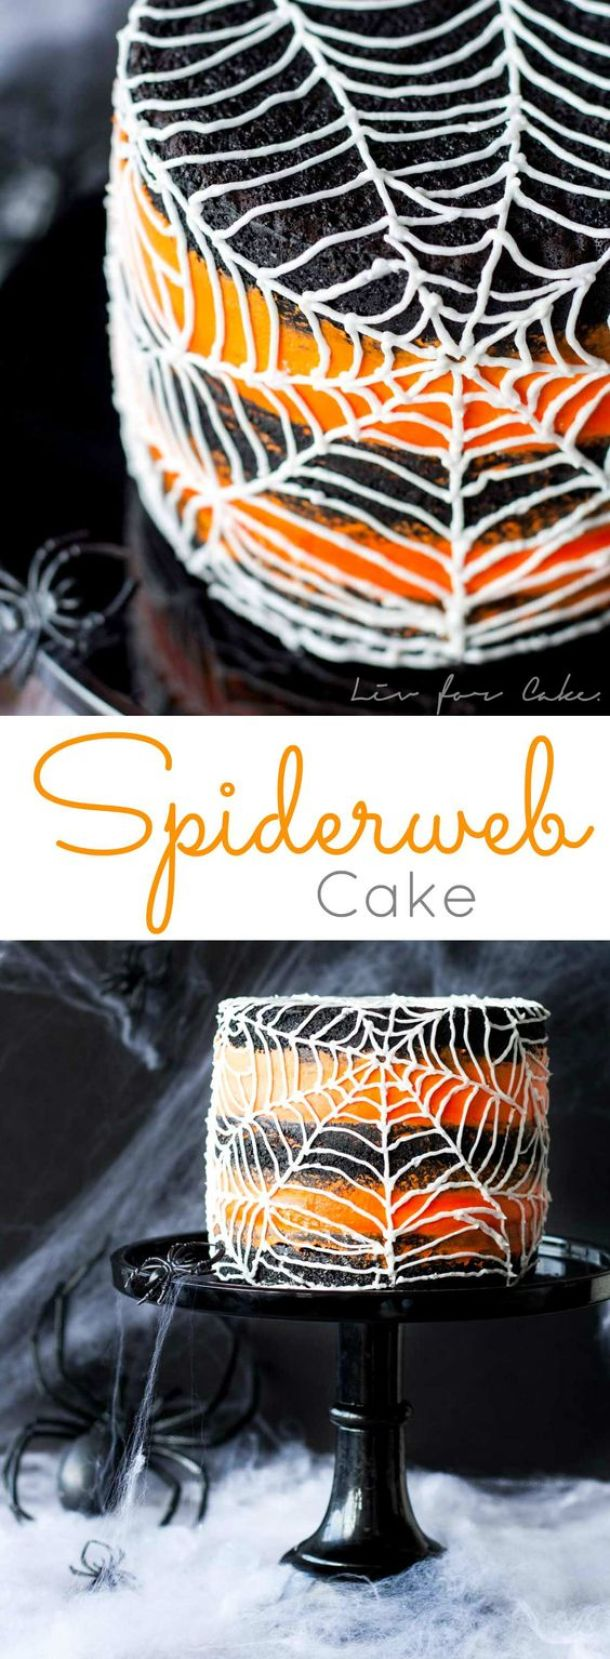 Halloween Party Recipes - Spiderweb Cake Dessert Recipe via Liv for Cake - Rich Black Cocoa Cake with an Orange Buttercream Frosting